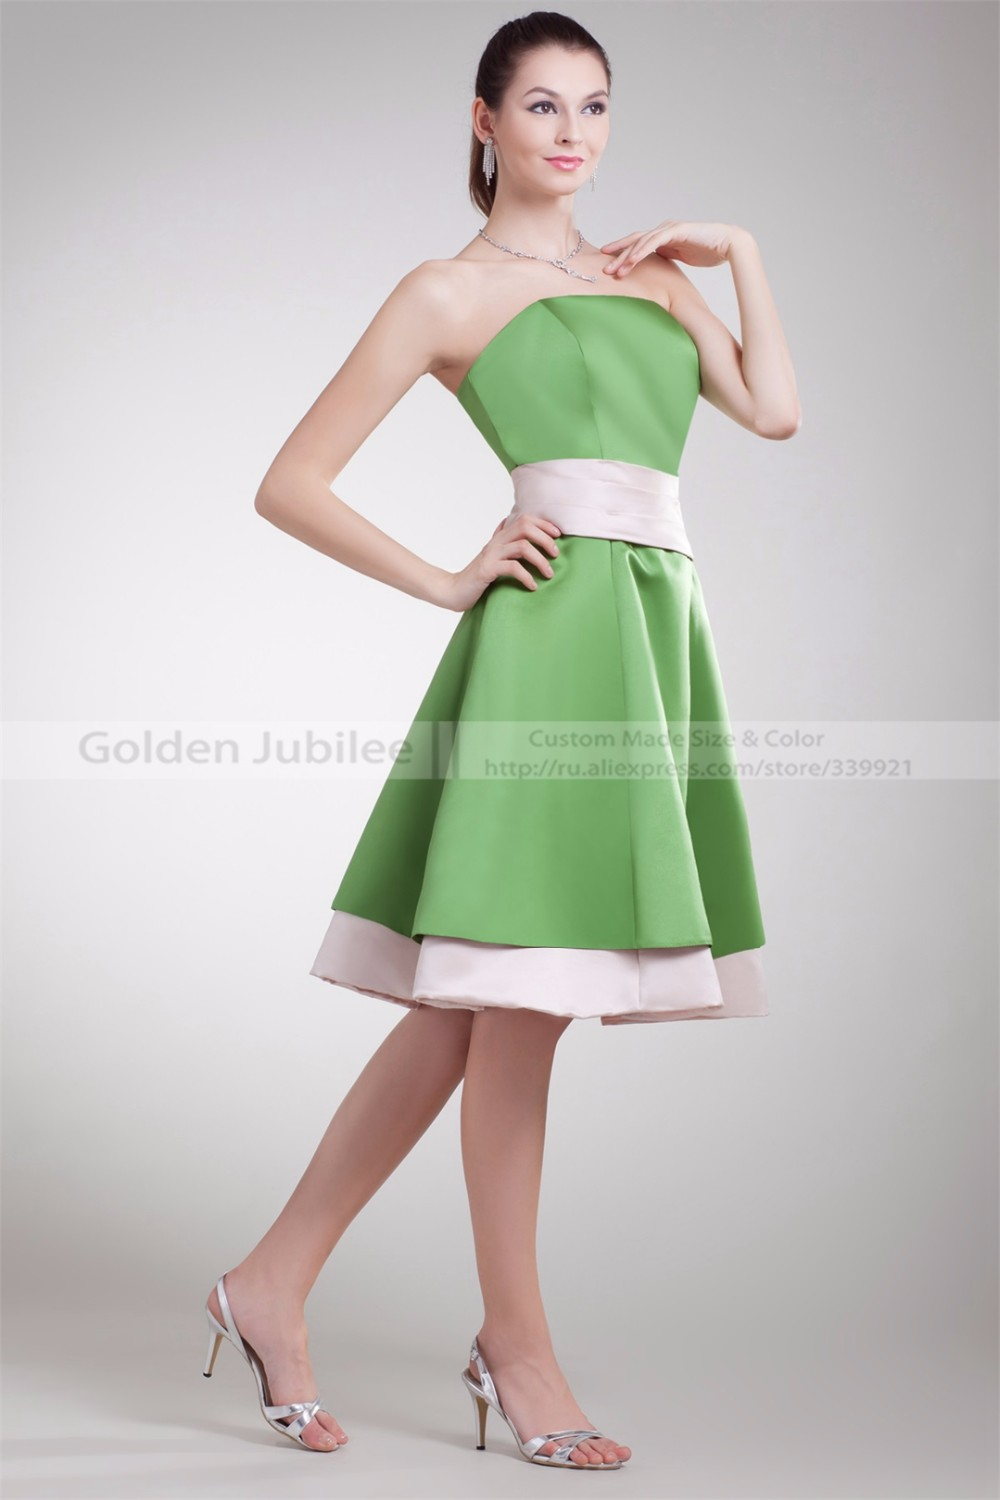 Satin-Strapless-Sleeveless-A-Line-Tiered-Special-Occasion-Dresses-23251-85267